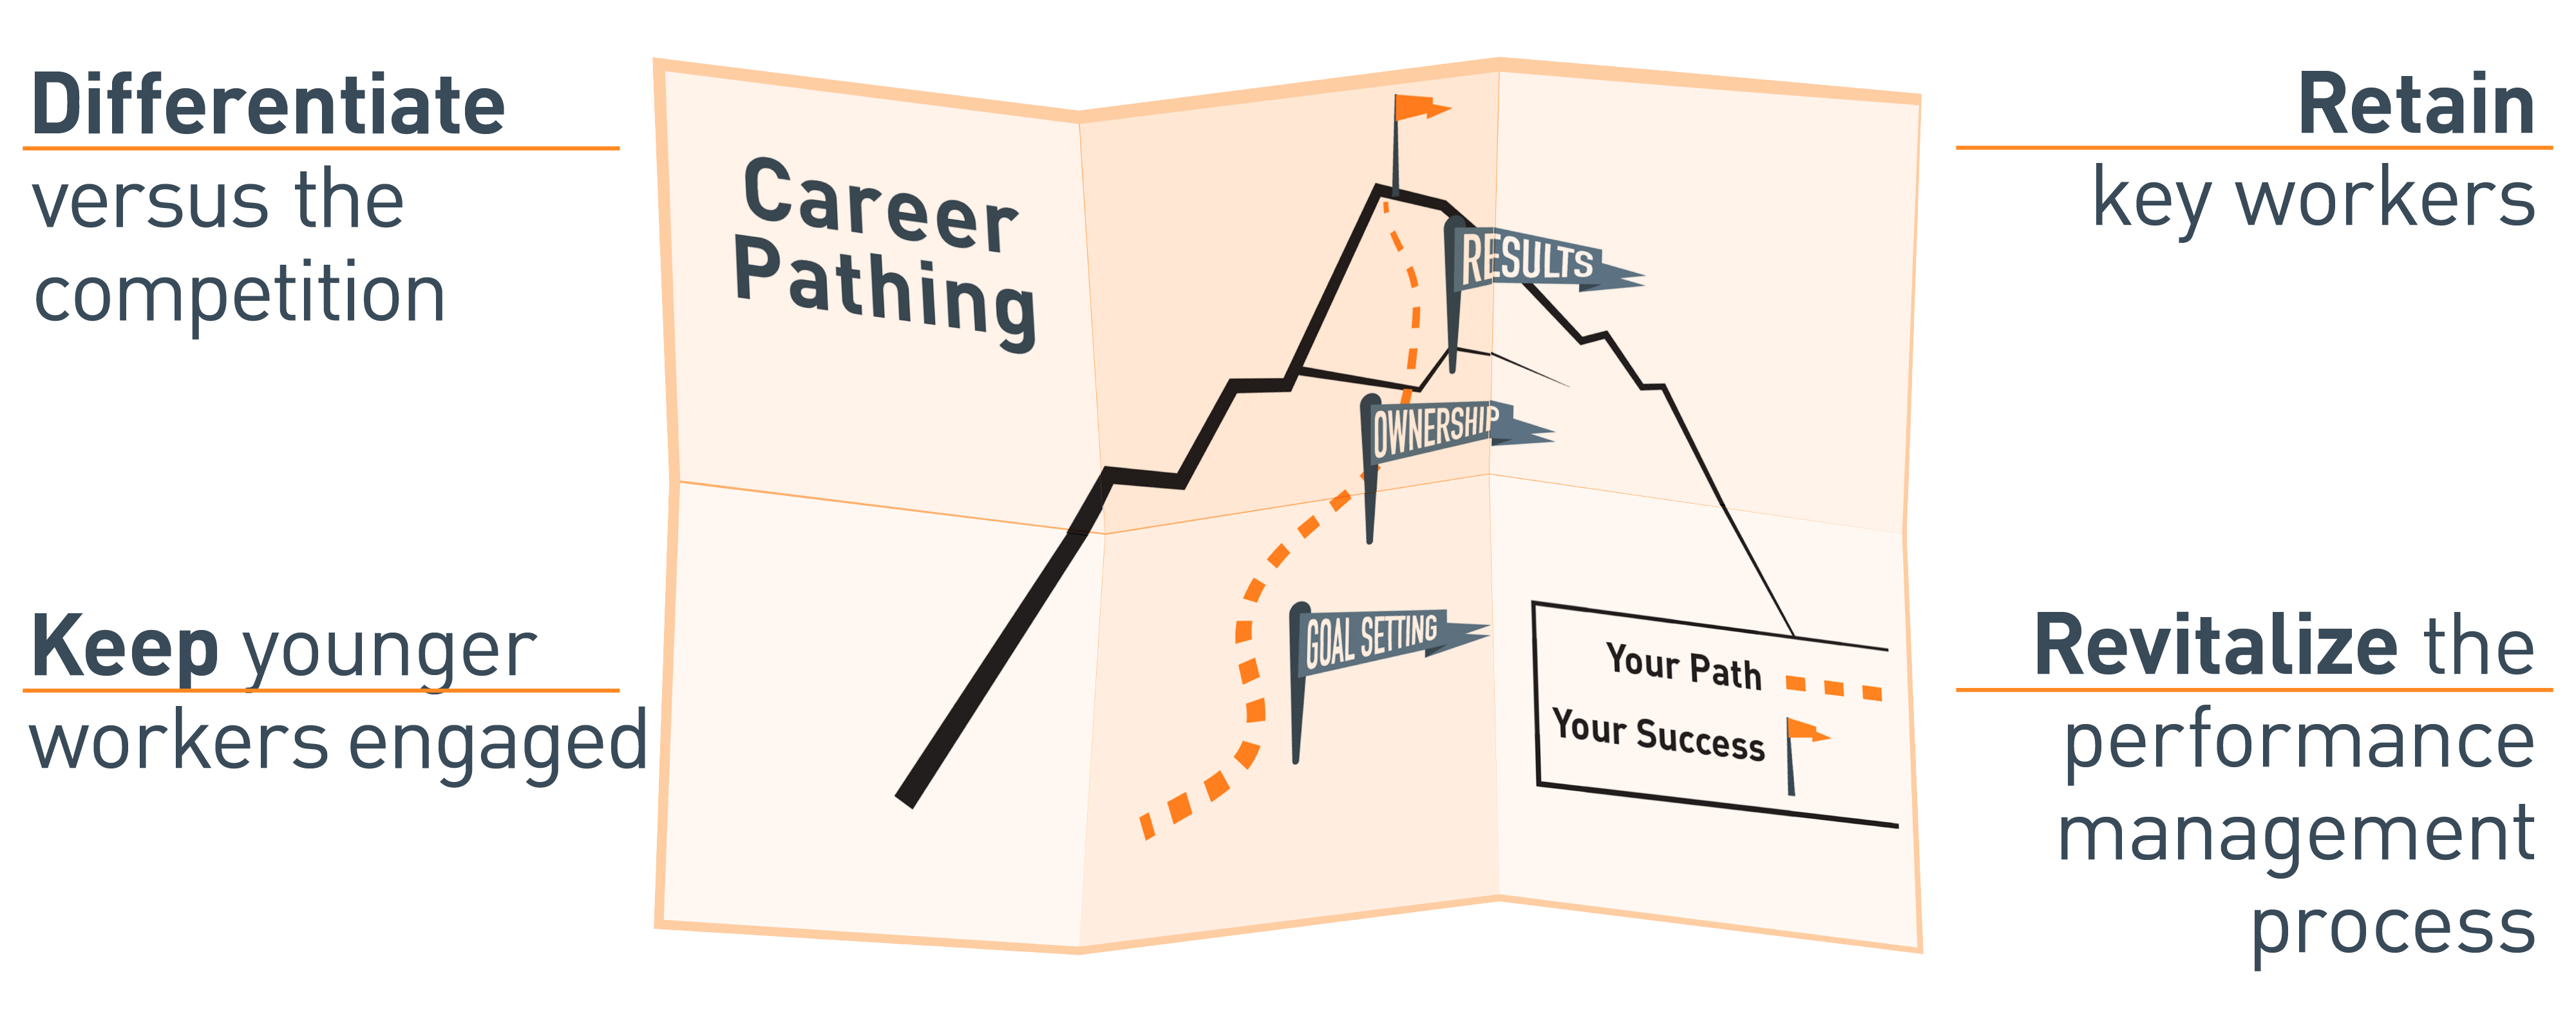 Career Pathing